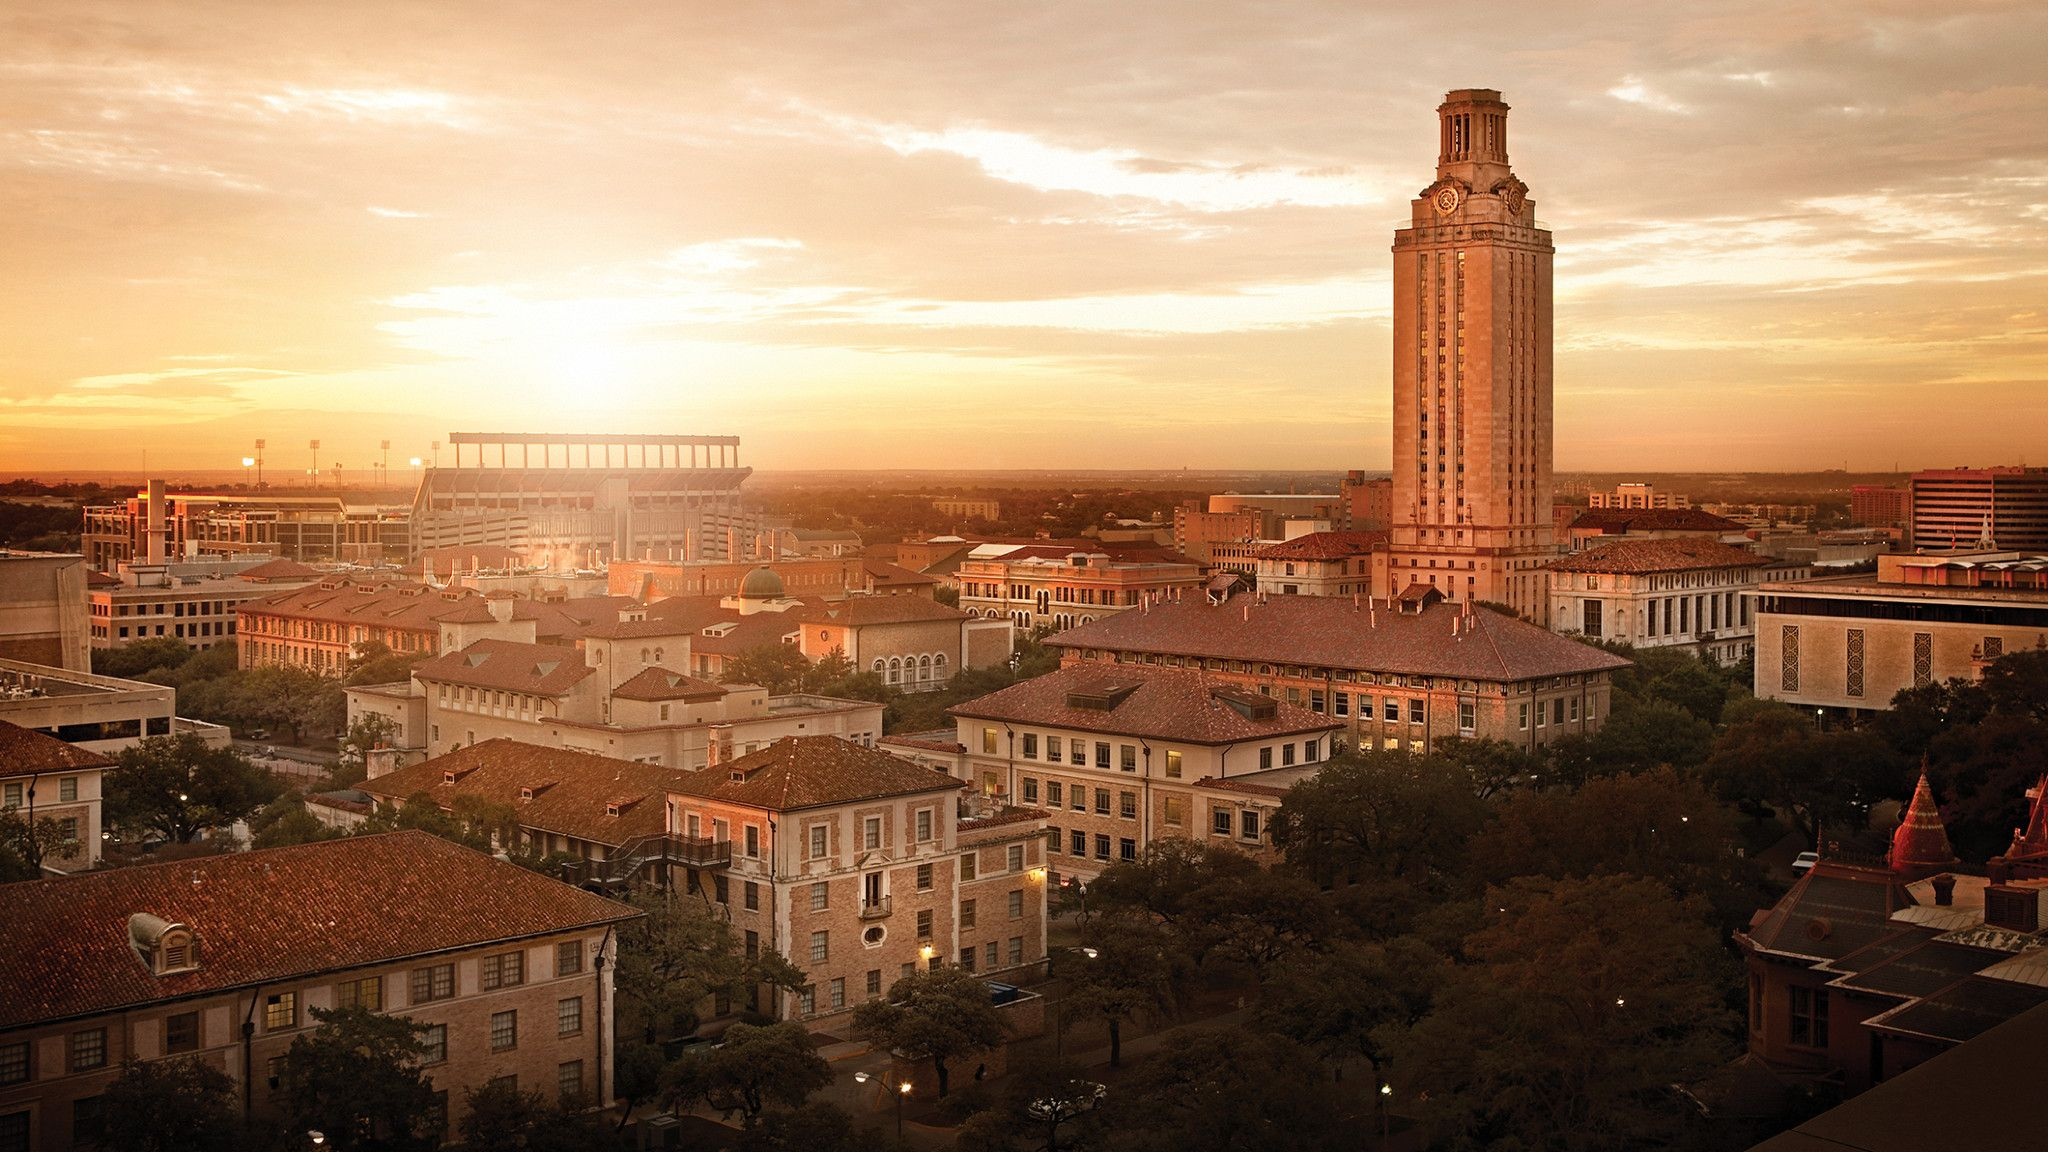 university of texas at austin essay prompts Texas a&m university 2017-18 supplemental essay prompt guide please note: the information below relates to last year's essay prompts we are going to update this guide with the prompts for 2018-19 as soon as they become available.